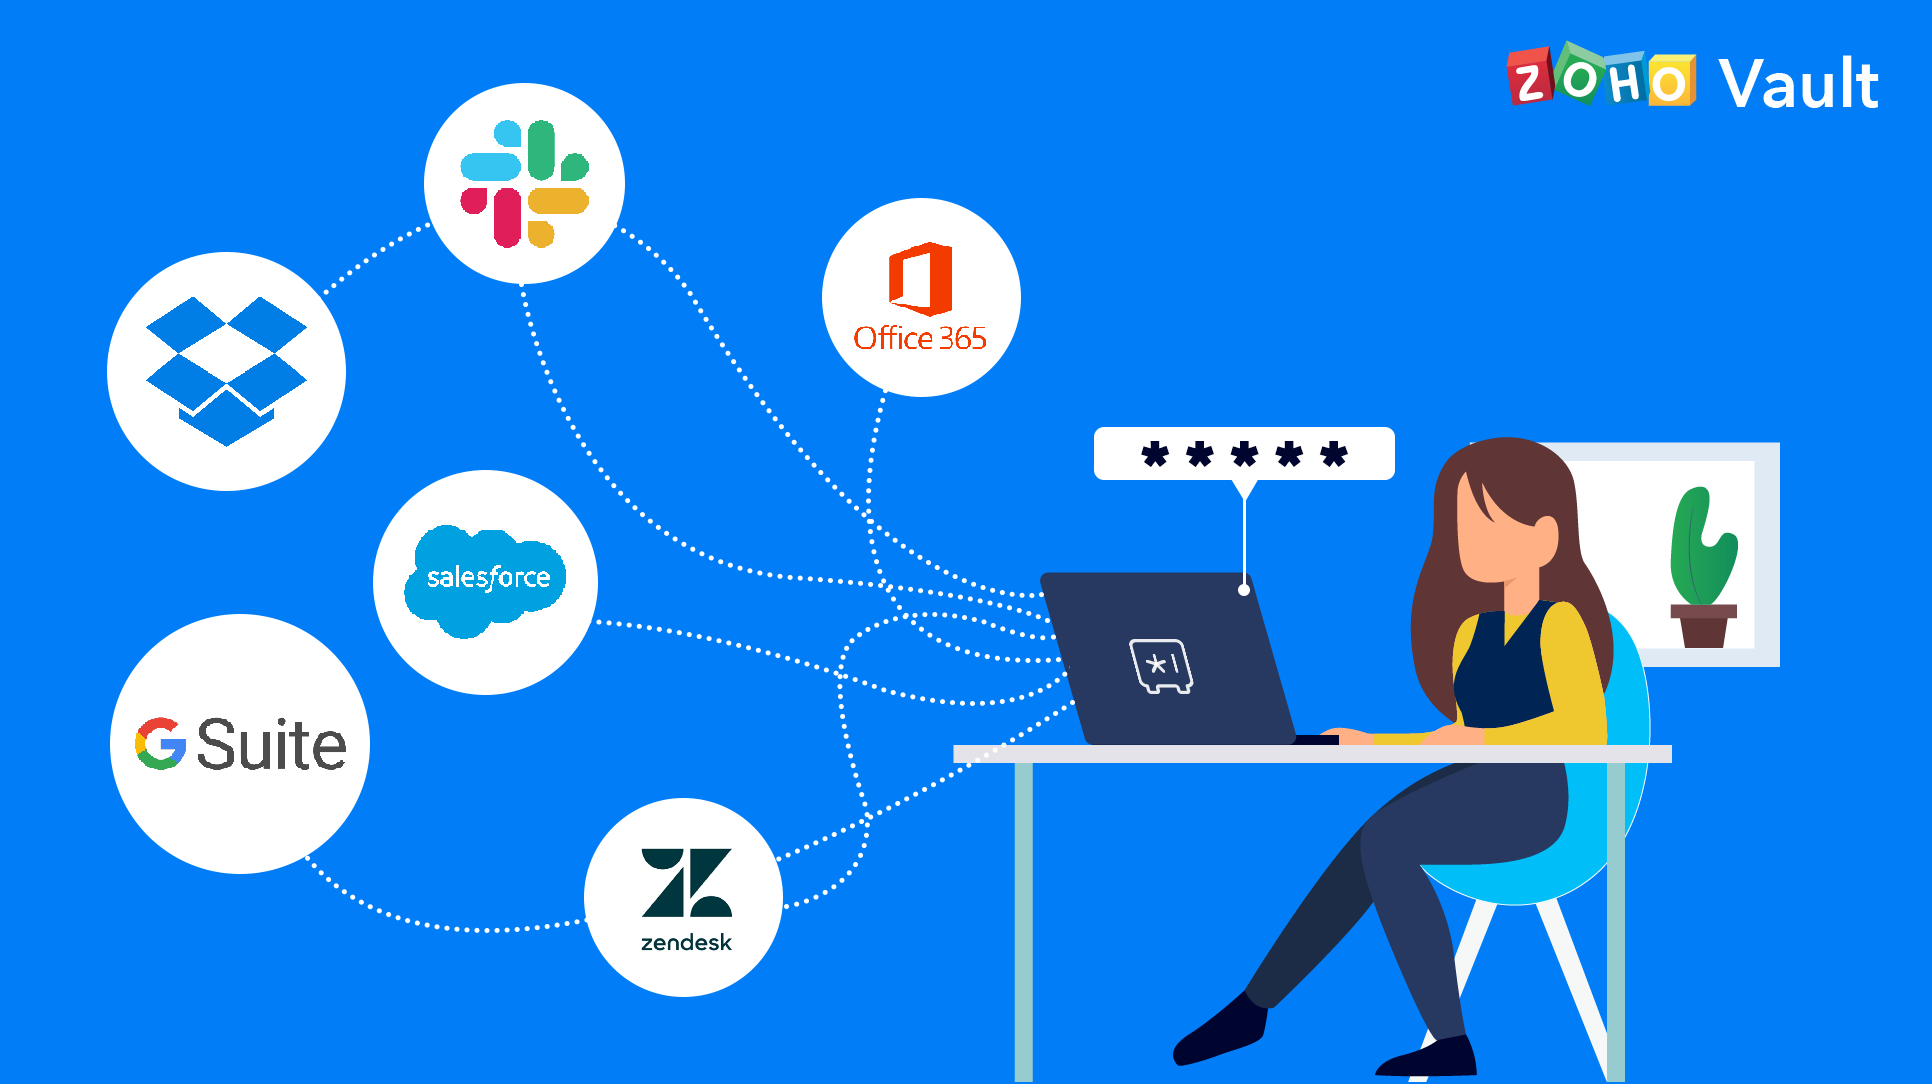 Deliver a passwordless experience with Zoho Vault Single Sign-On